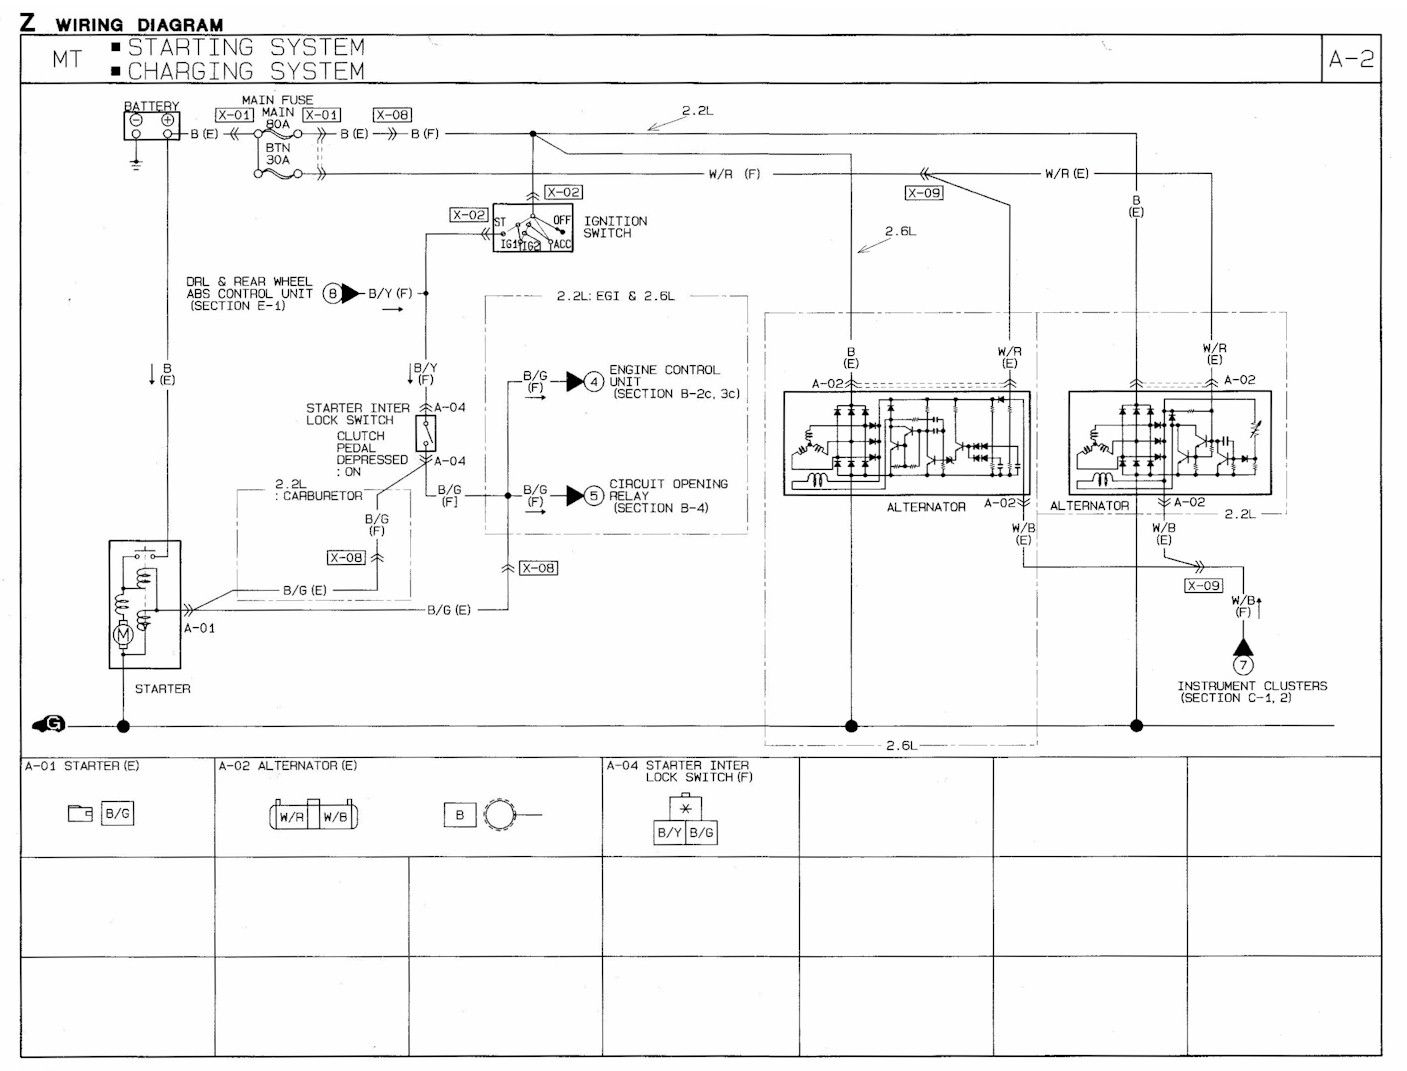 medium resolution of 1991 mazda b2600i wiring diagrams wiring diagram for professional u2022 1991 mazda b2600 stereo wiring diagram b2600 mazda stereo wiring